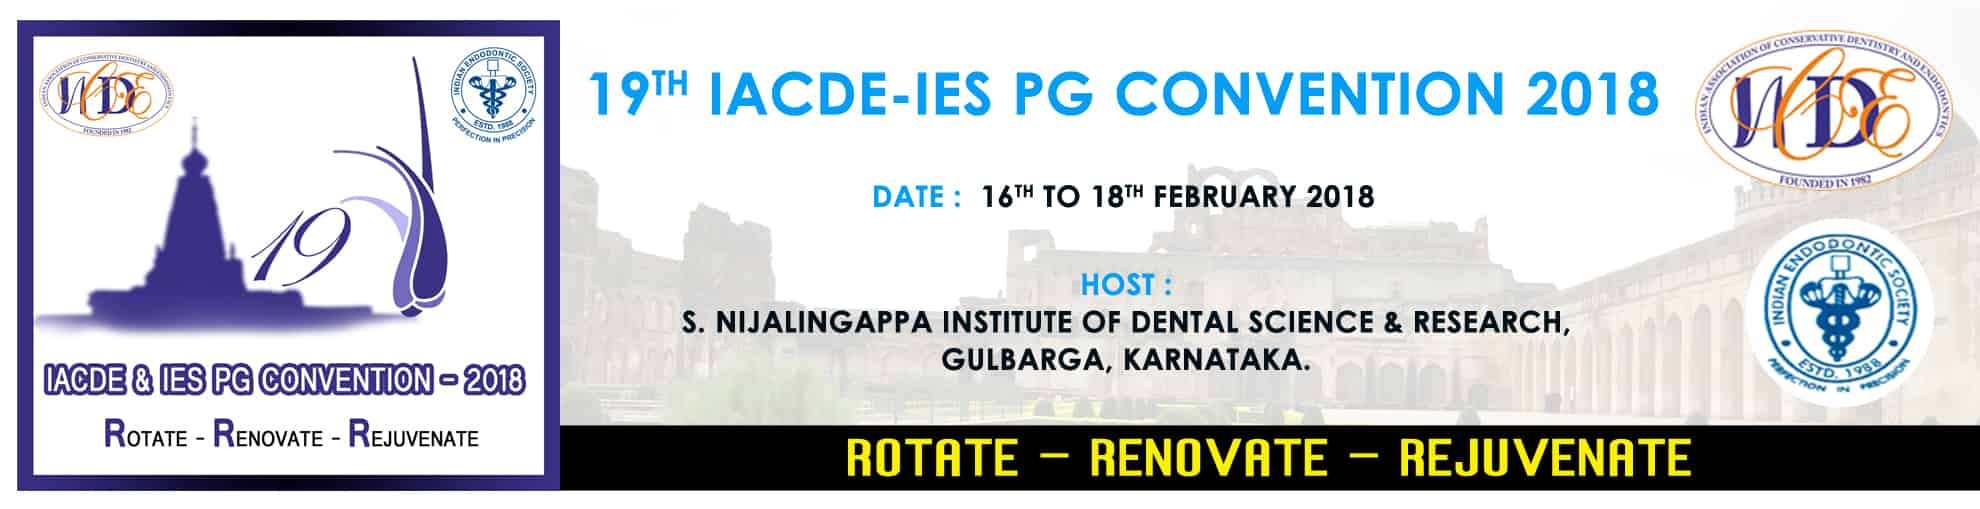 19th IACDE - IES PG Convention 2018